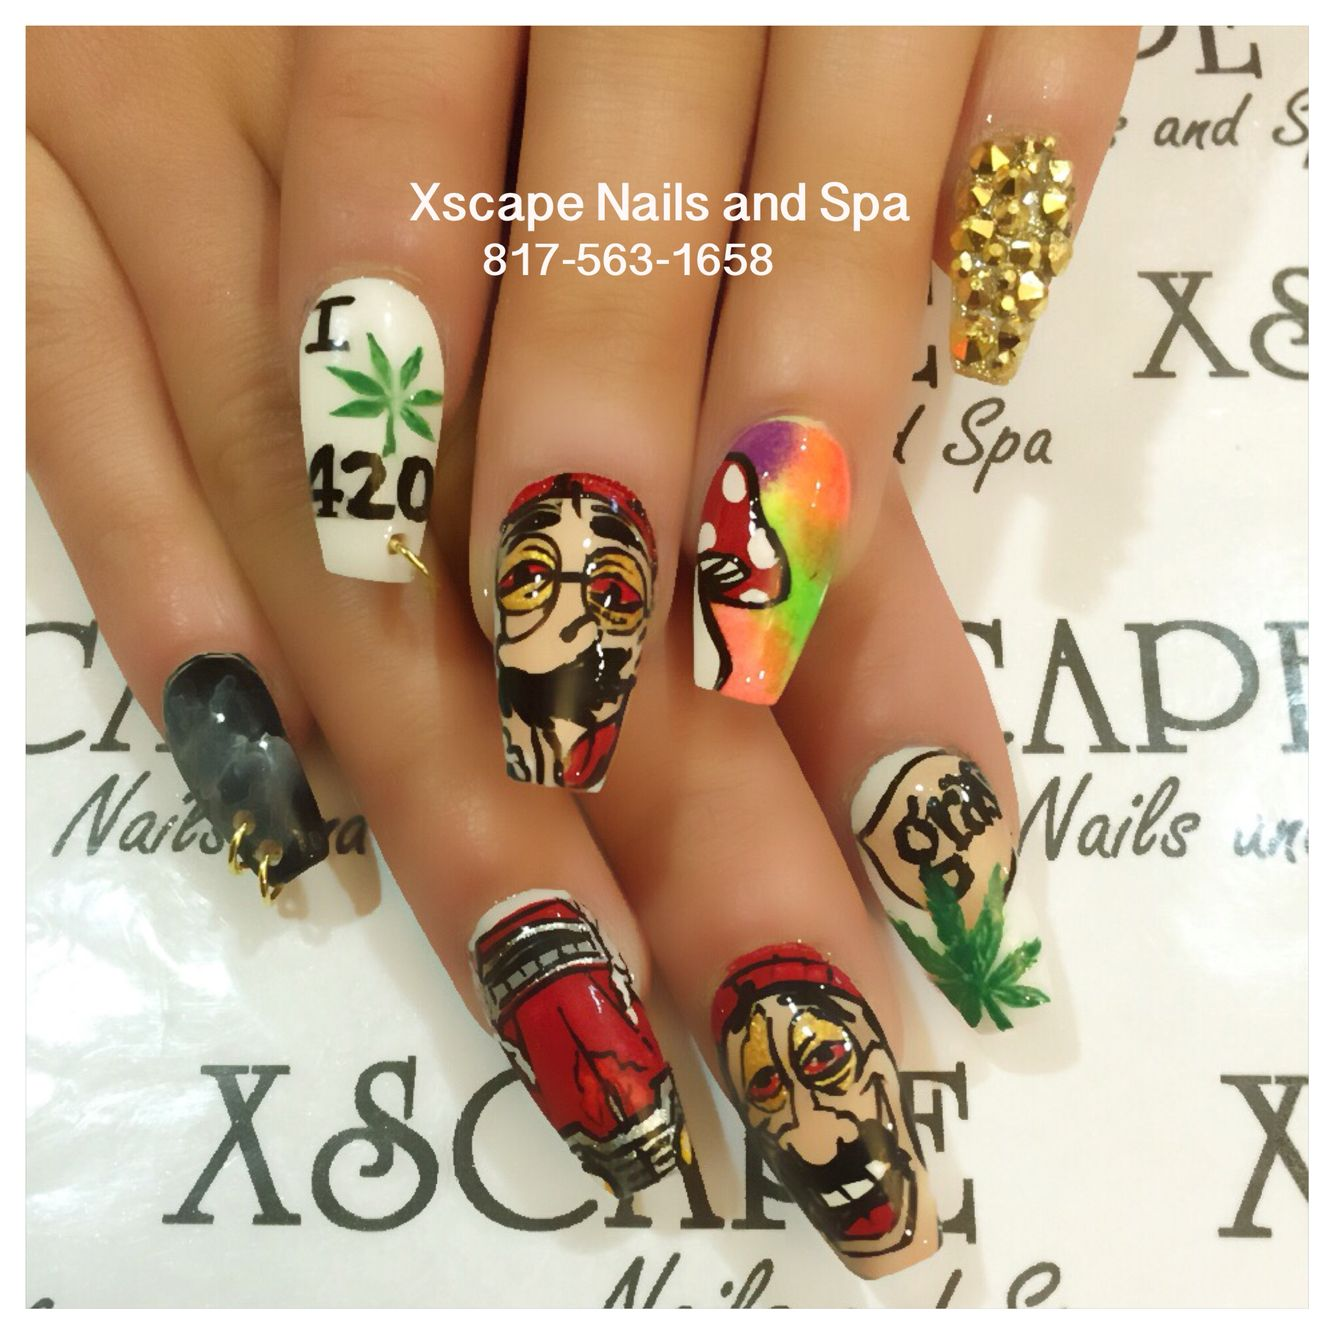 420 nails | Cute Nails Designs | Pinterest | Dope nails, Beautiful ...